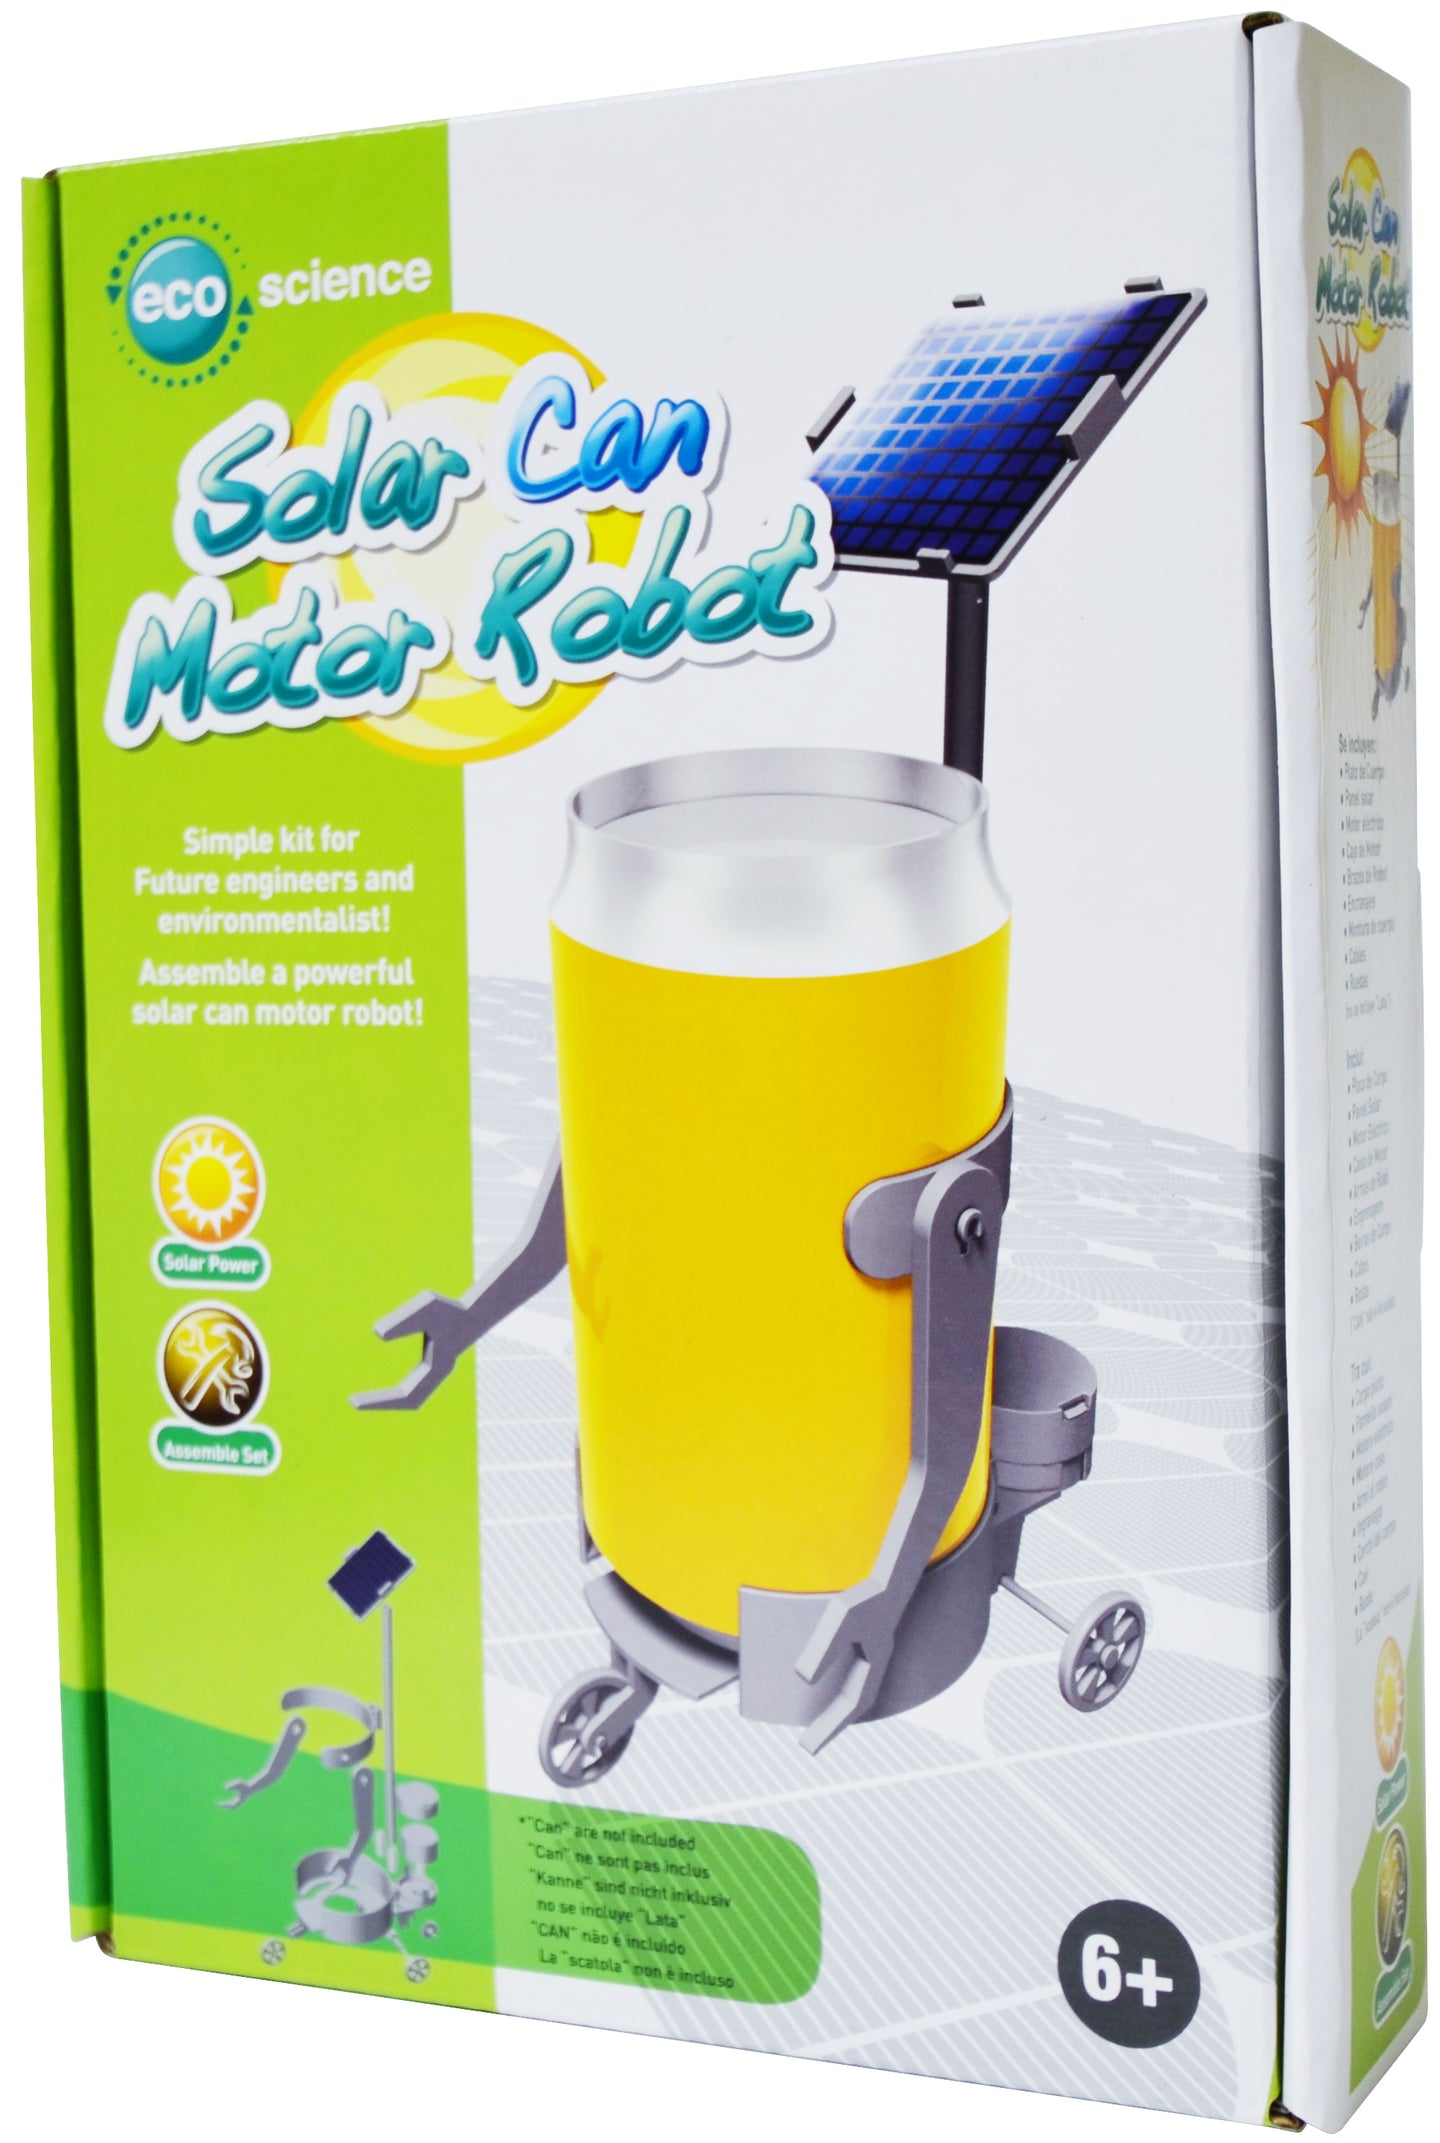 Edu-Toys - Edu-Science - Solar Can Motor Robot - EDU37550 | STEM Toy Store | STEMToyStore.com